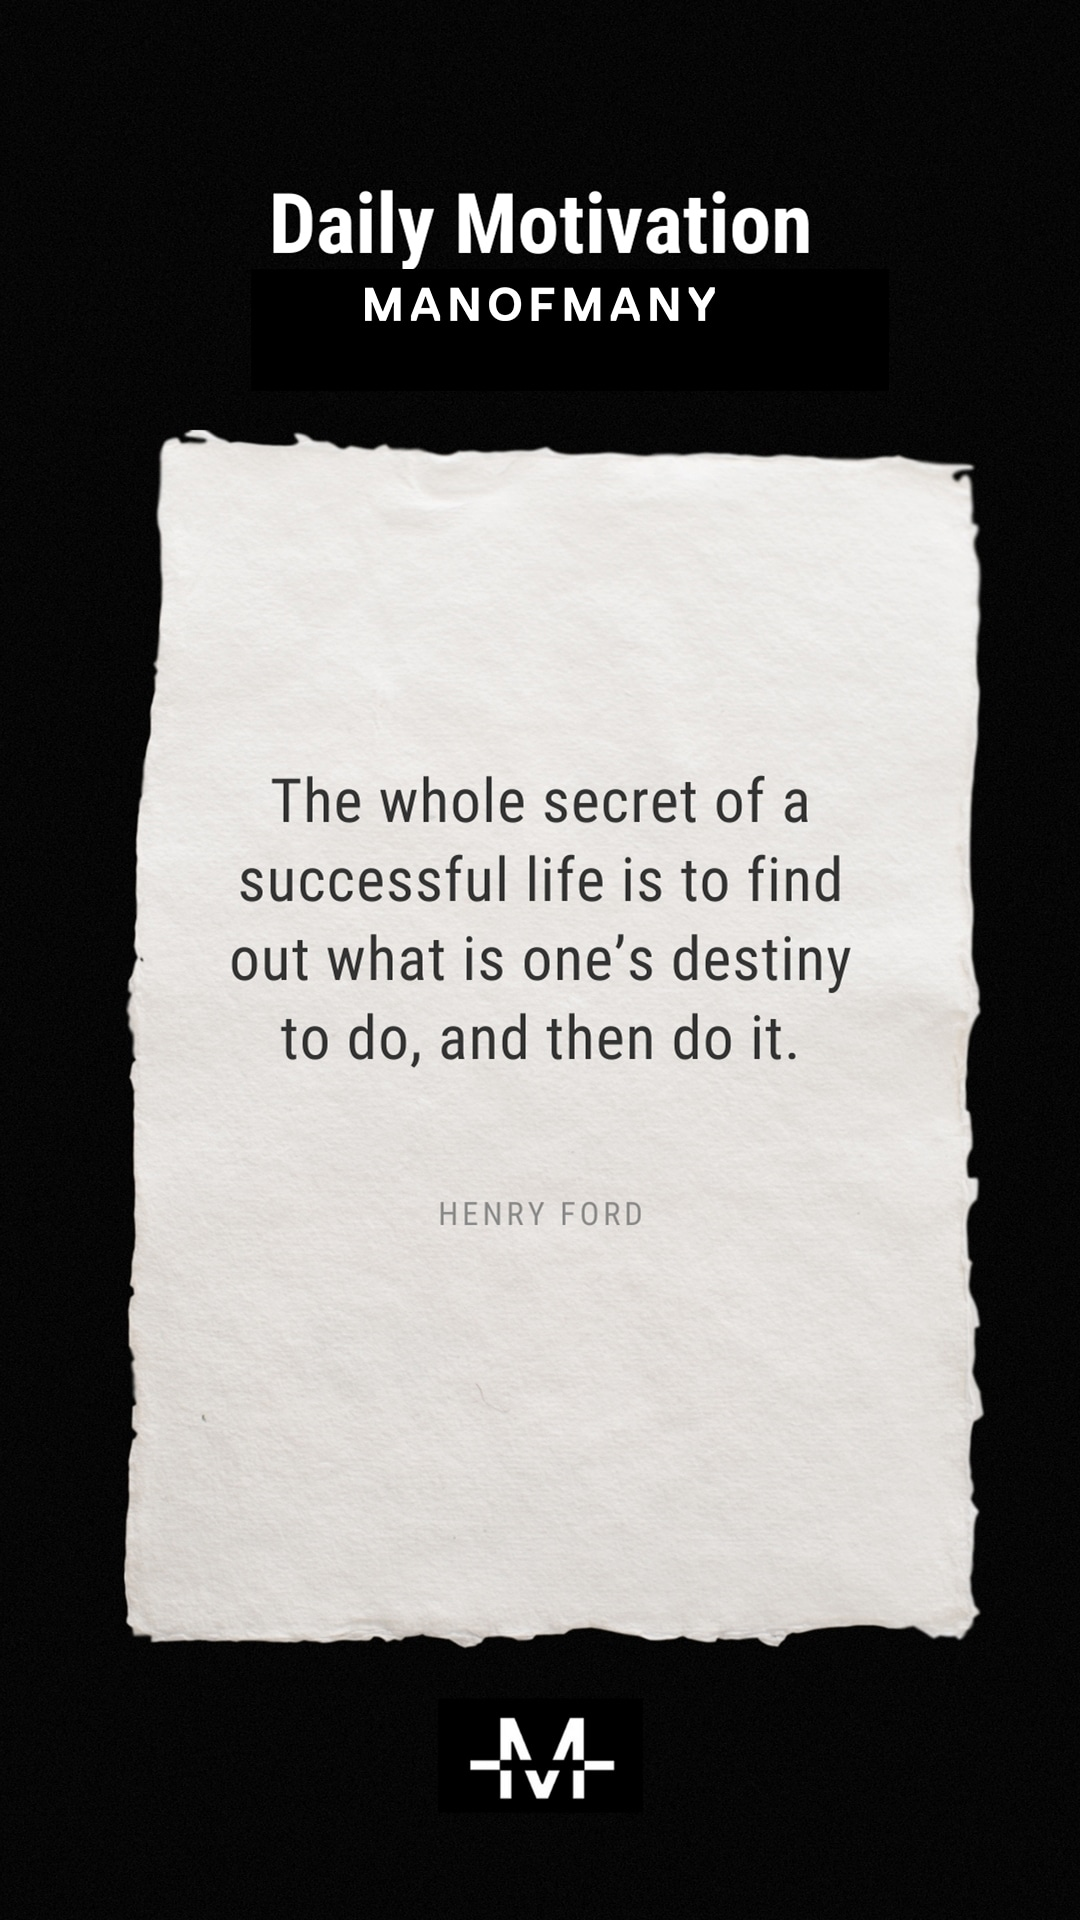 The whole secret of a successful life is to find out what is one's destiny to do, and then do it.– Henry Ford quote